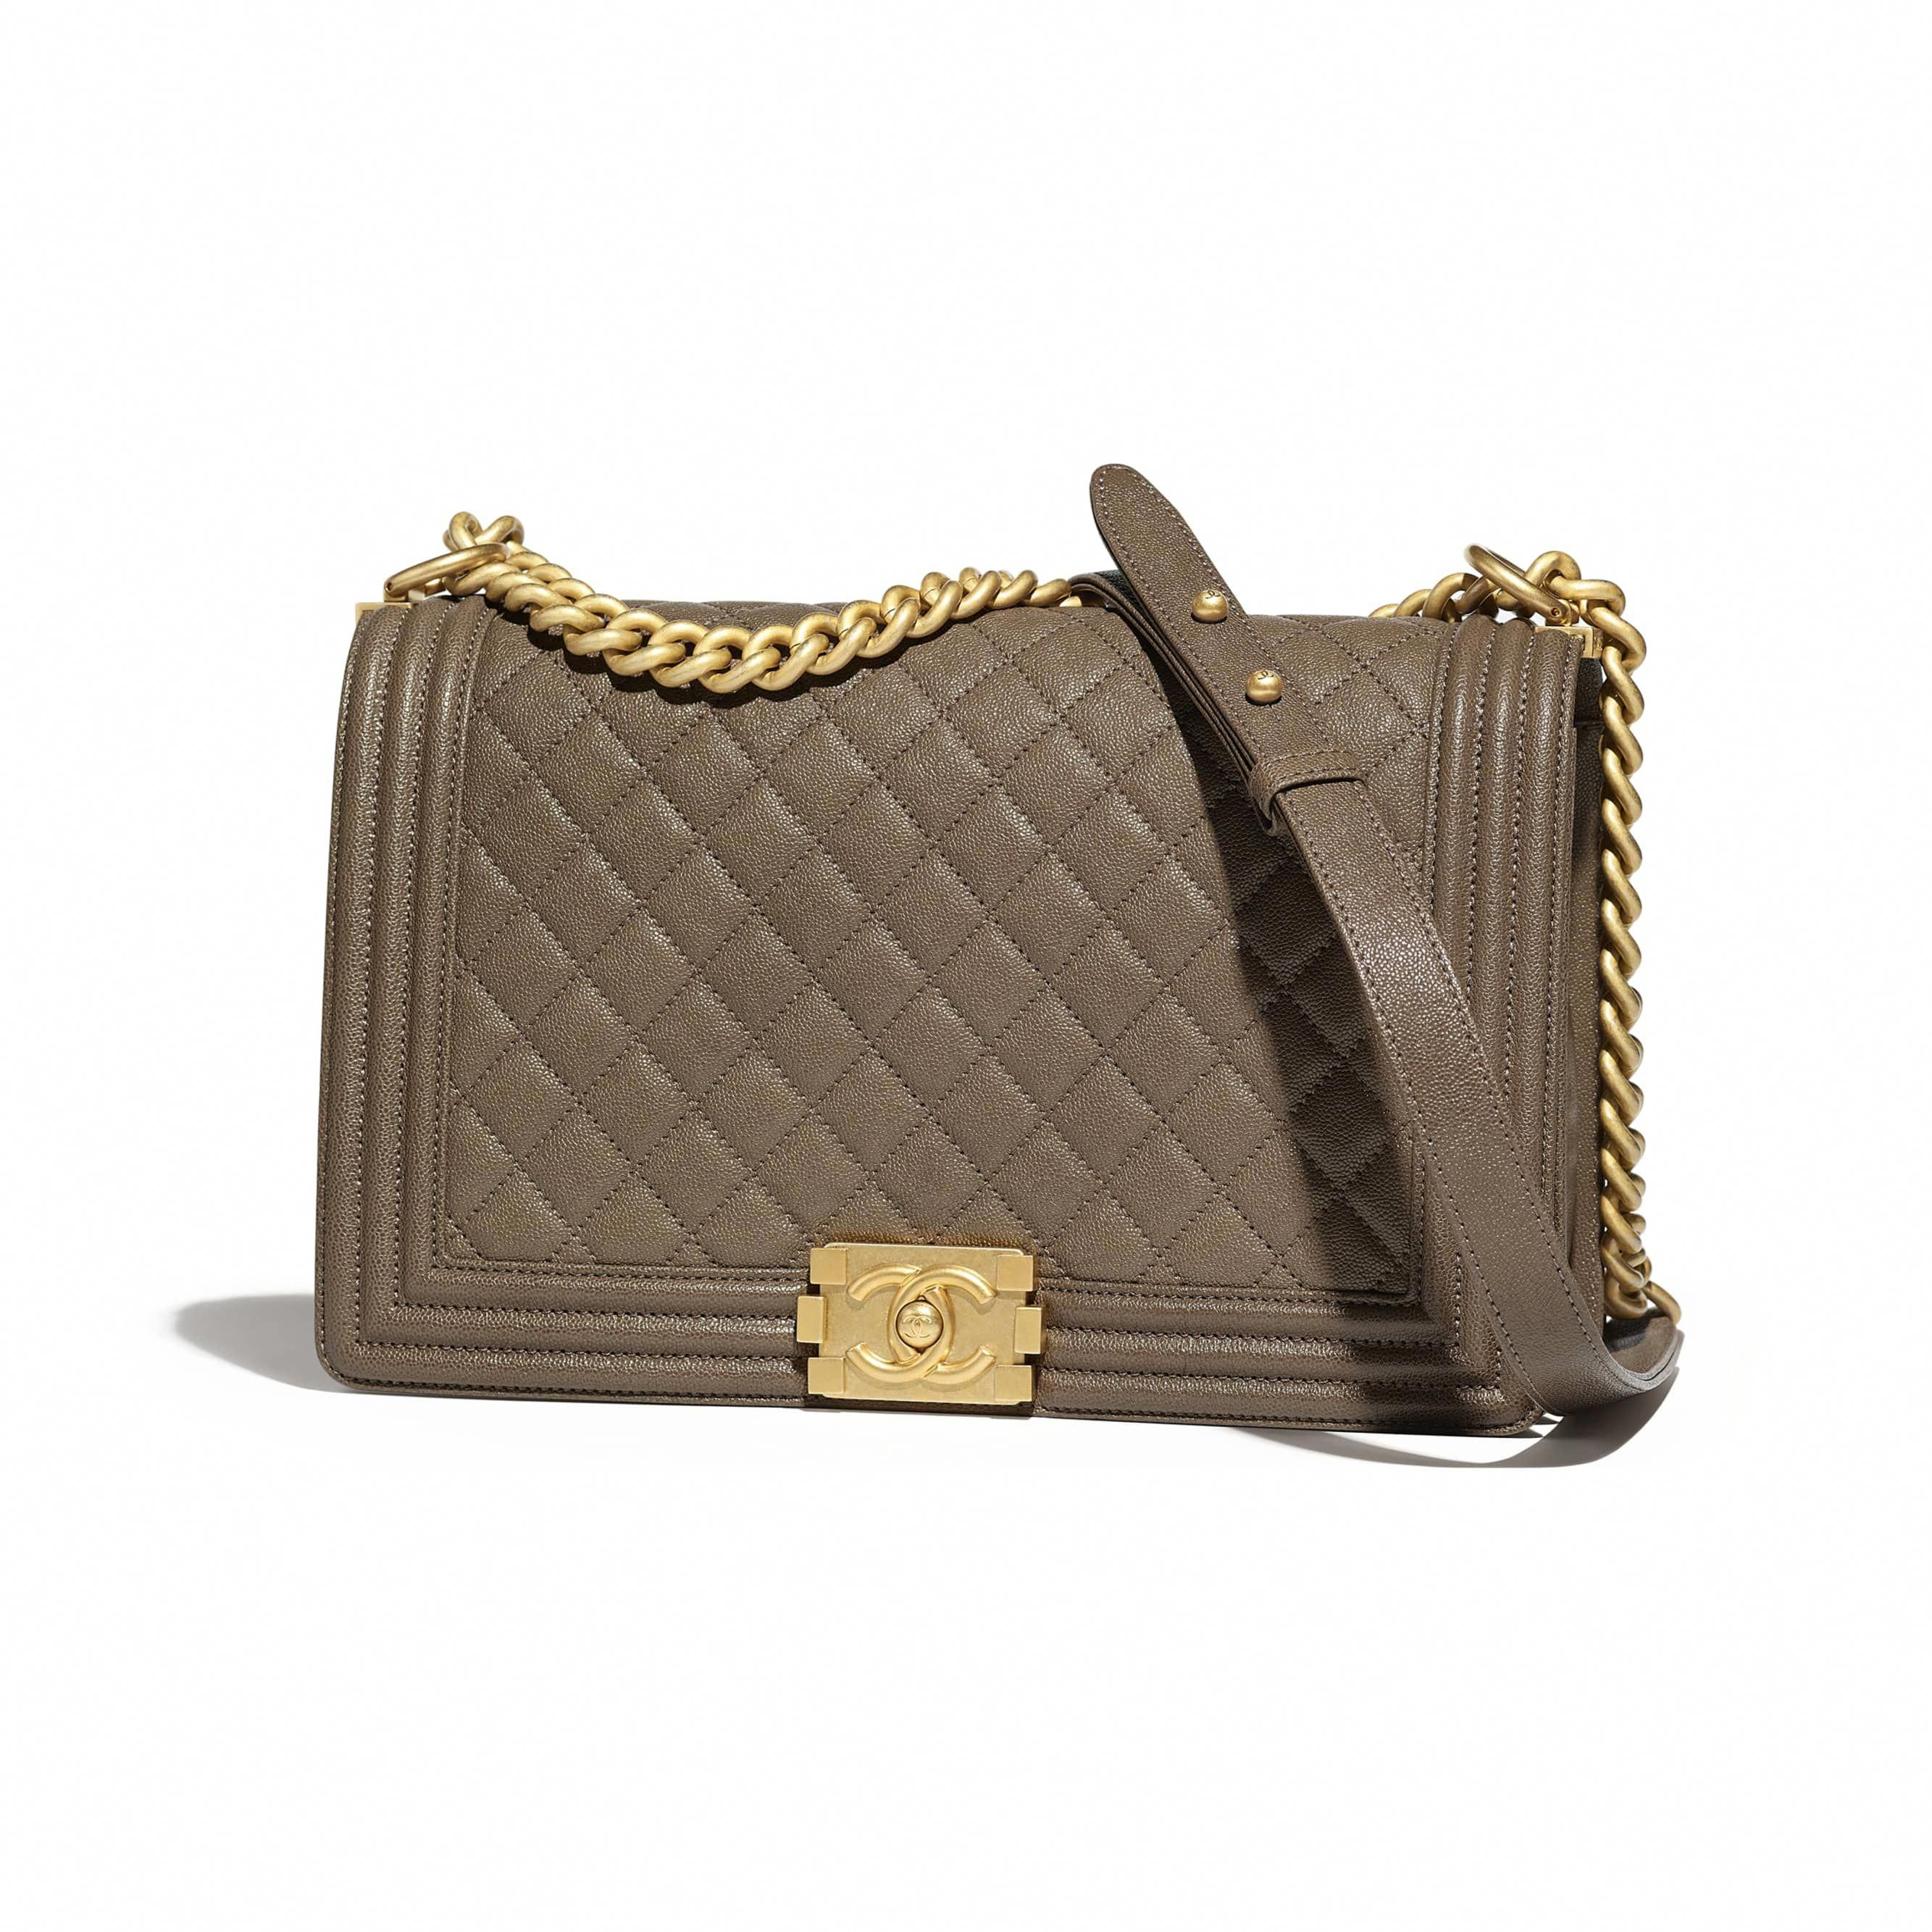 5e89b4ef3da76 Grained Calfskin   Gold-Tone Metal Khaki Large BOY CHANEL Handbag ...